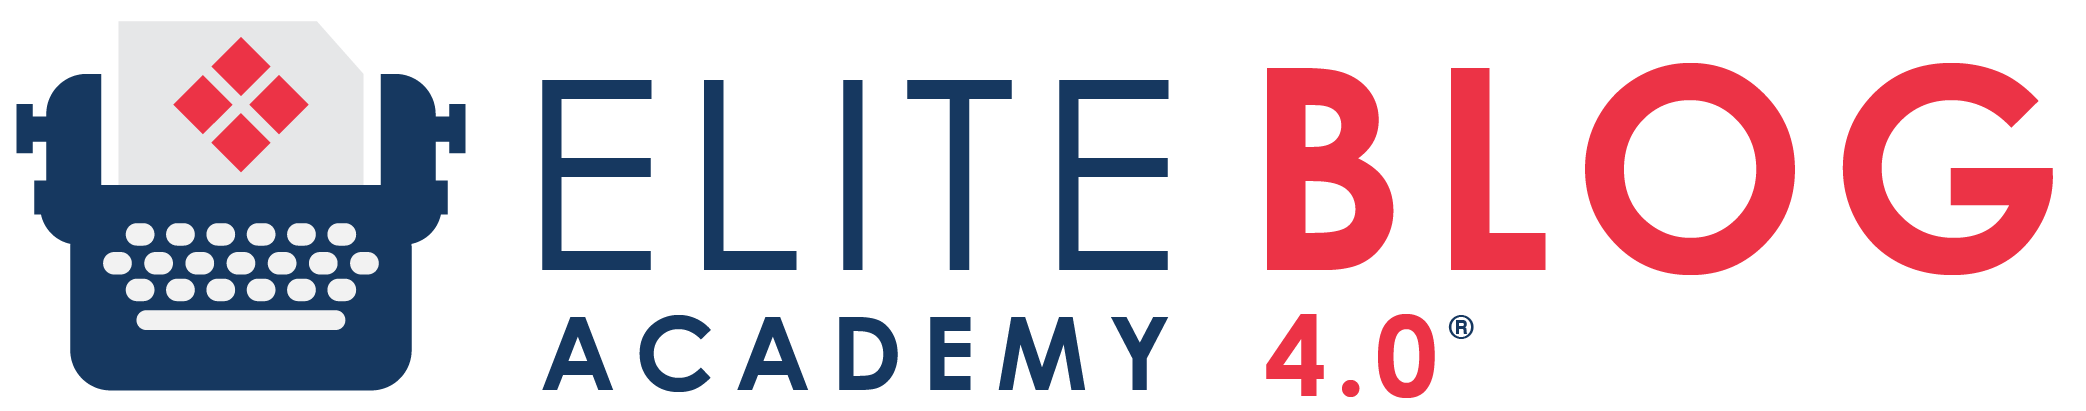 Elite Blog Academy: Create a Successful, Profitable, Online Business -- Elite Blog Academy® offers a comprehensive, step-by-step and proven framework for creating a successful, profitable online business.